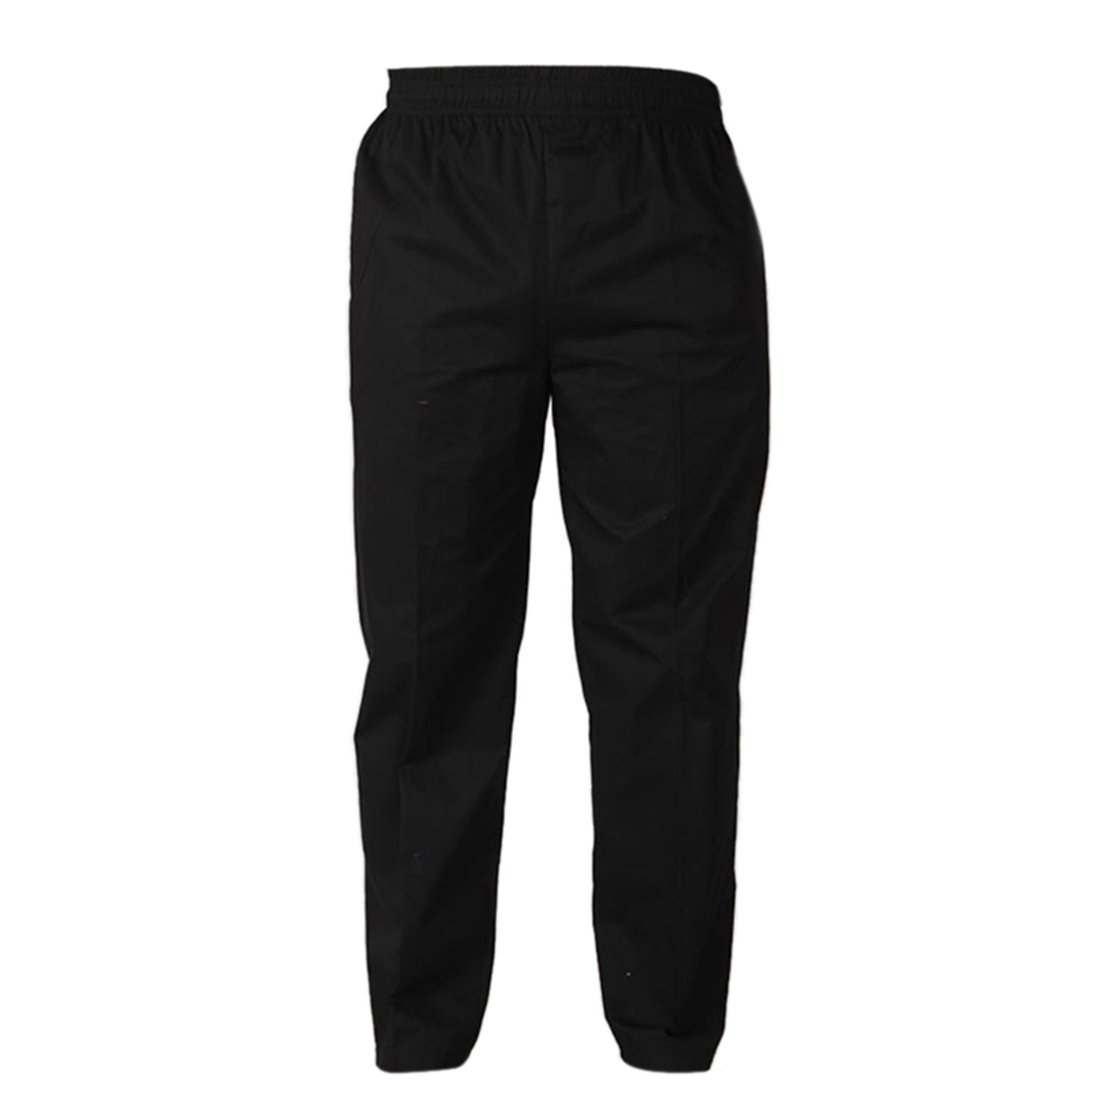 Enerhu Men Elastic Waist Baggy Chef Pants Pockets Hotel/Kitchen/Restaurant/Coffee Uniform Pants Asian M